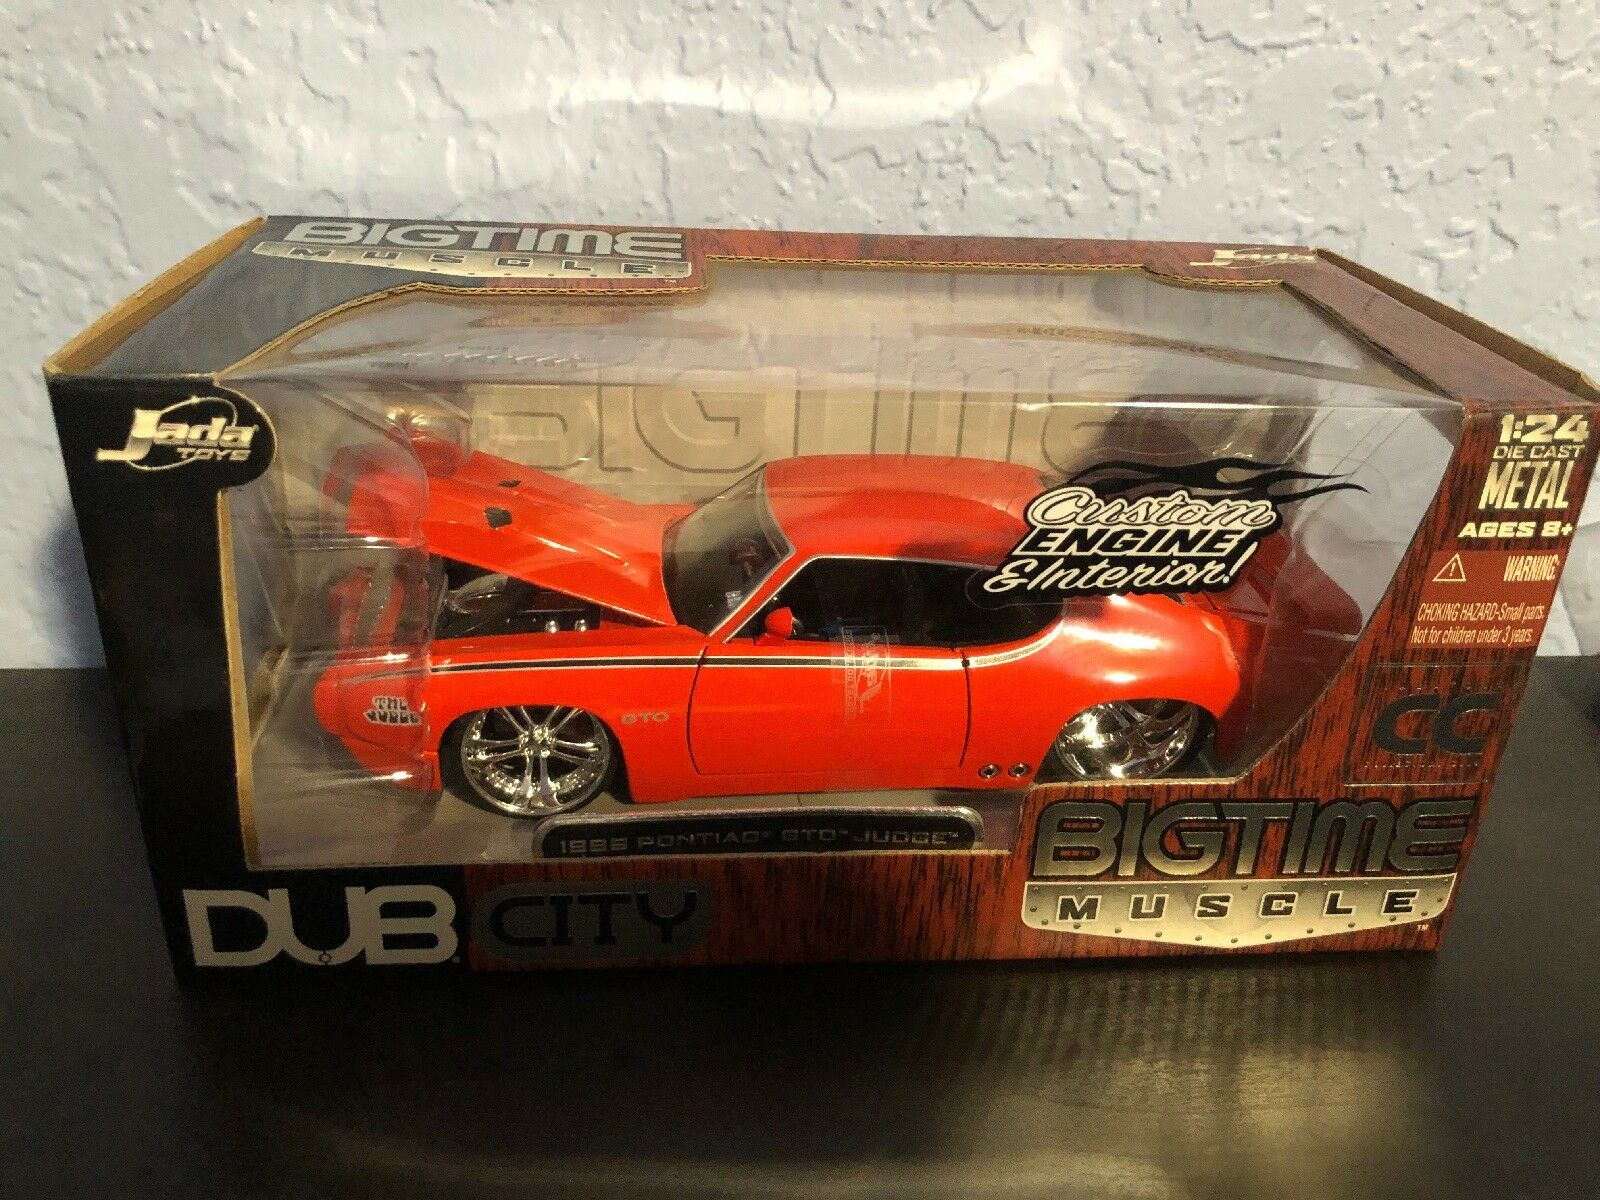 1969 Pontiac GTO GTO GTO Judge 1 24 Scale Jada Dub City Bigtime Muscle Collectors Club 165cf1